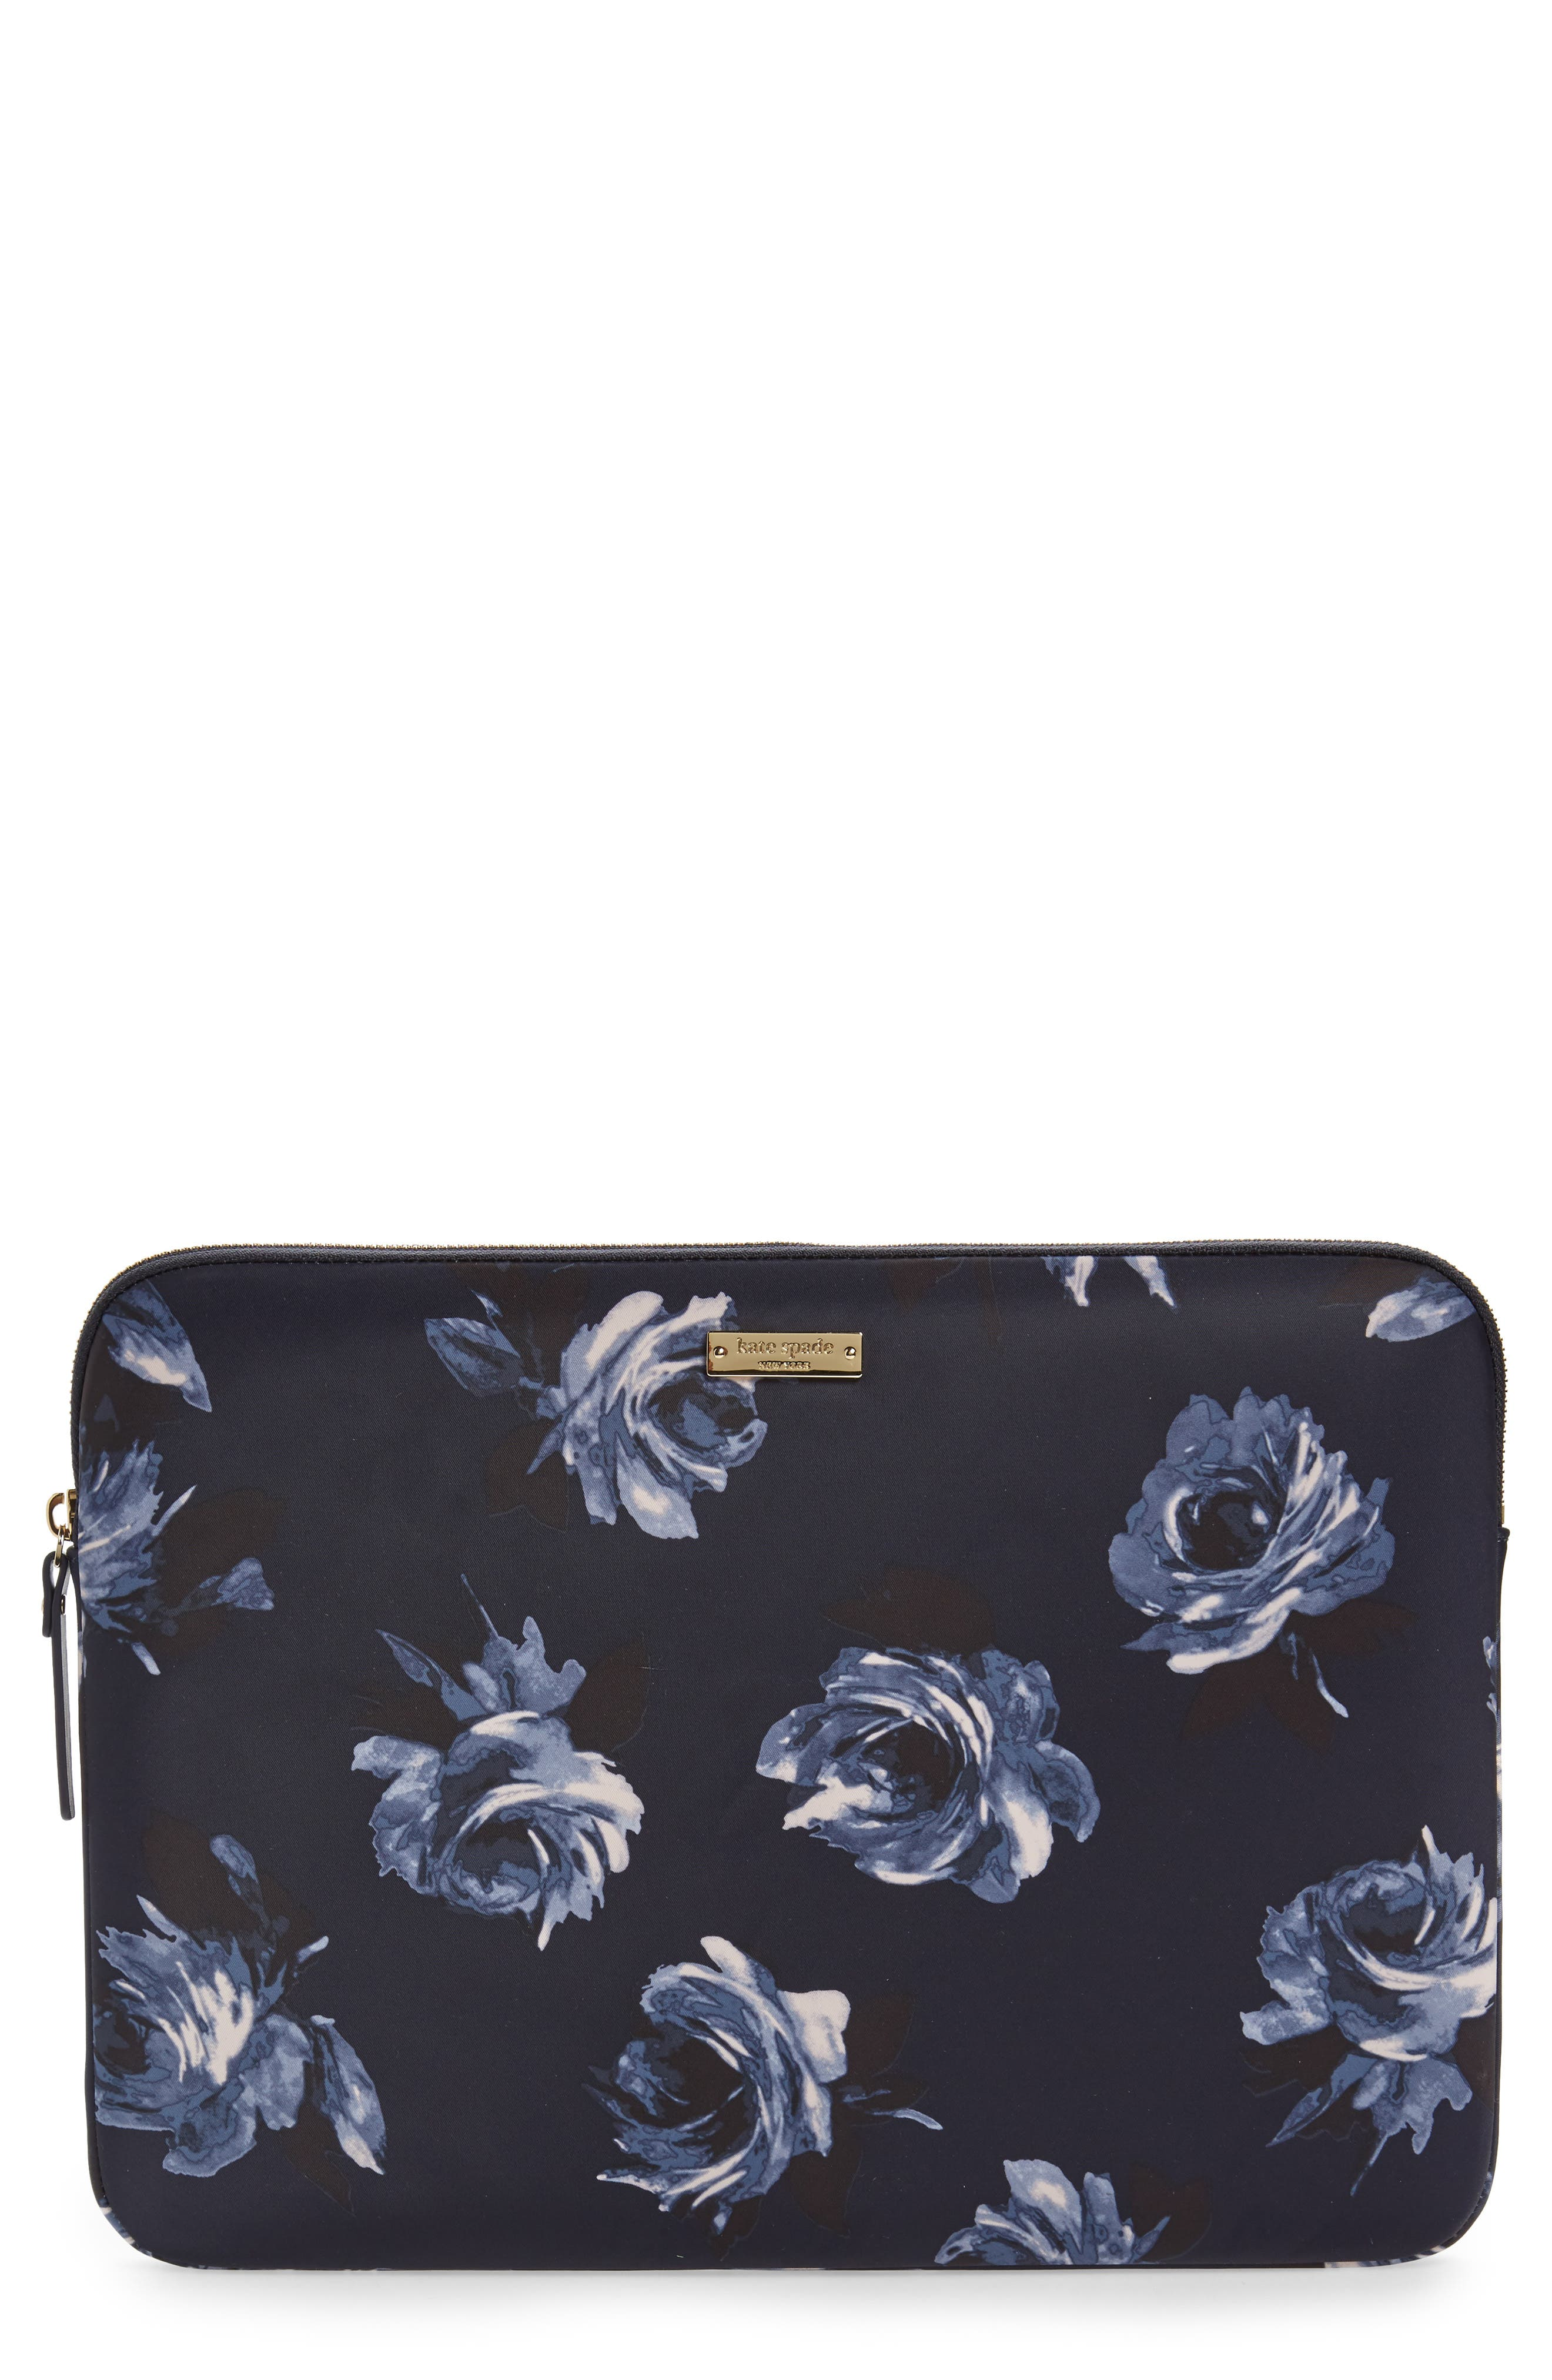 night rose 13-Inch laptop sleeve,                             Main thumbnail 1, color,